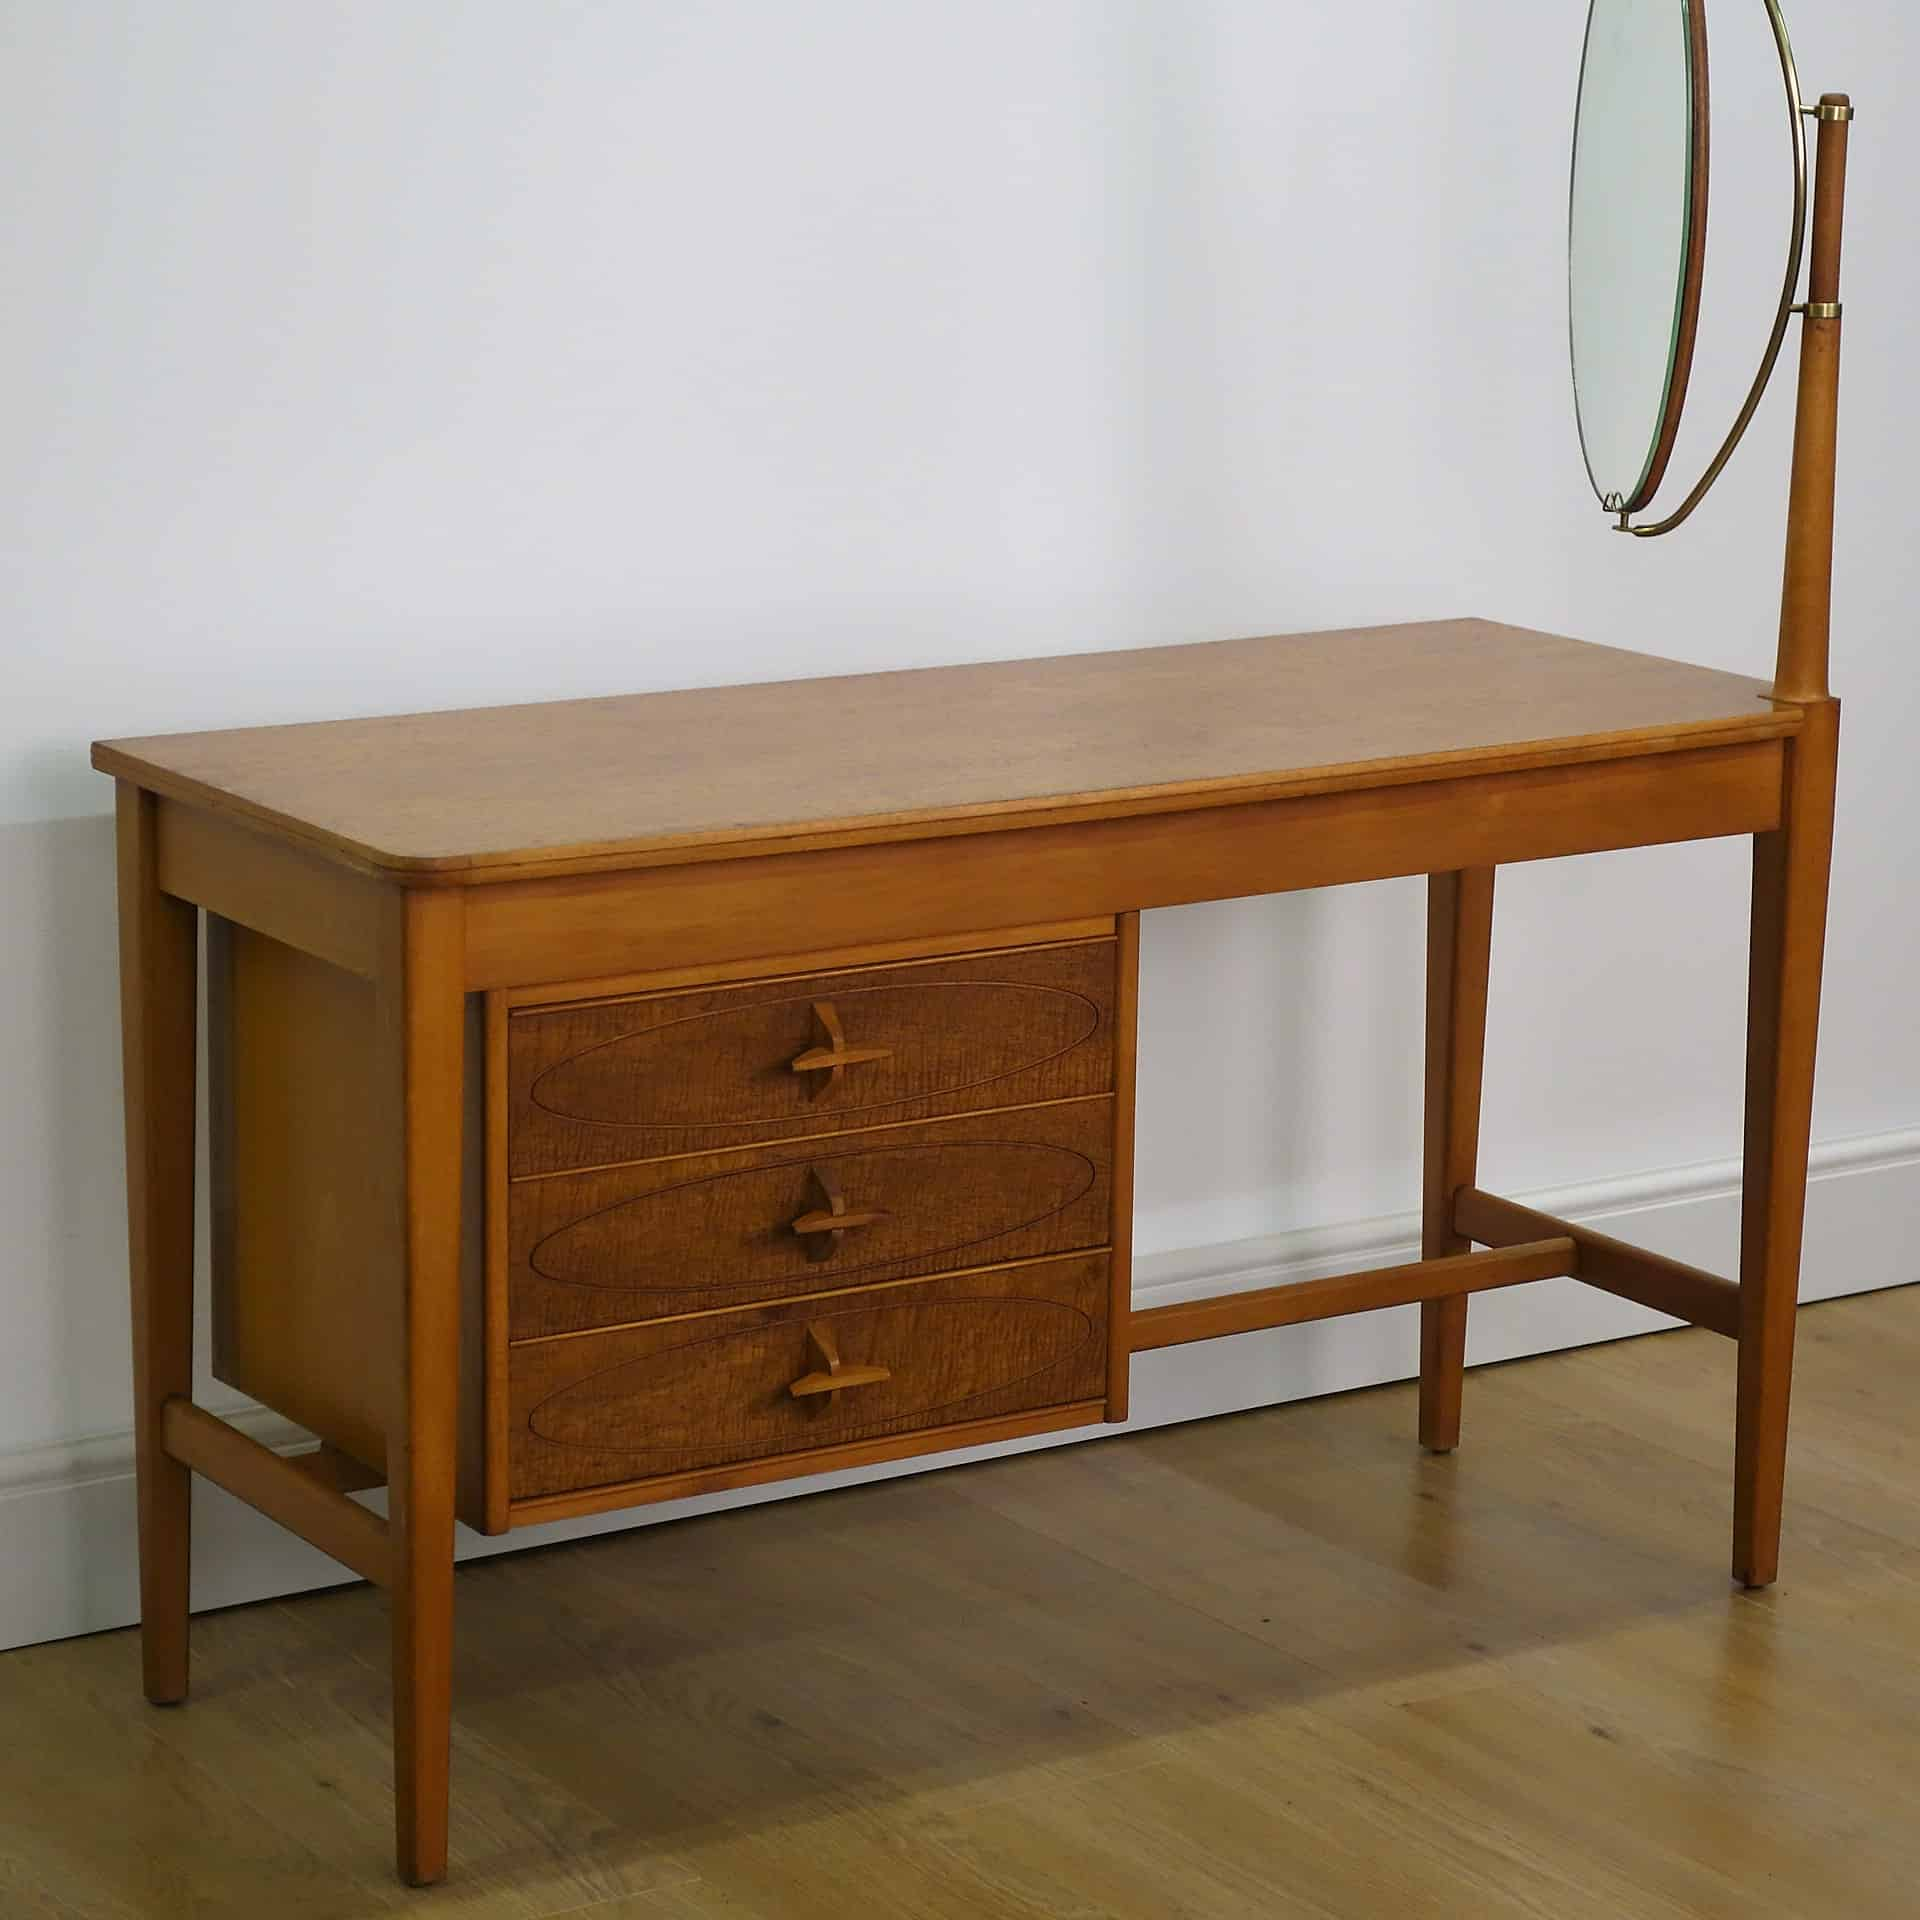 1950s Dressing table by Heals London